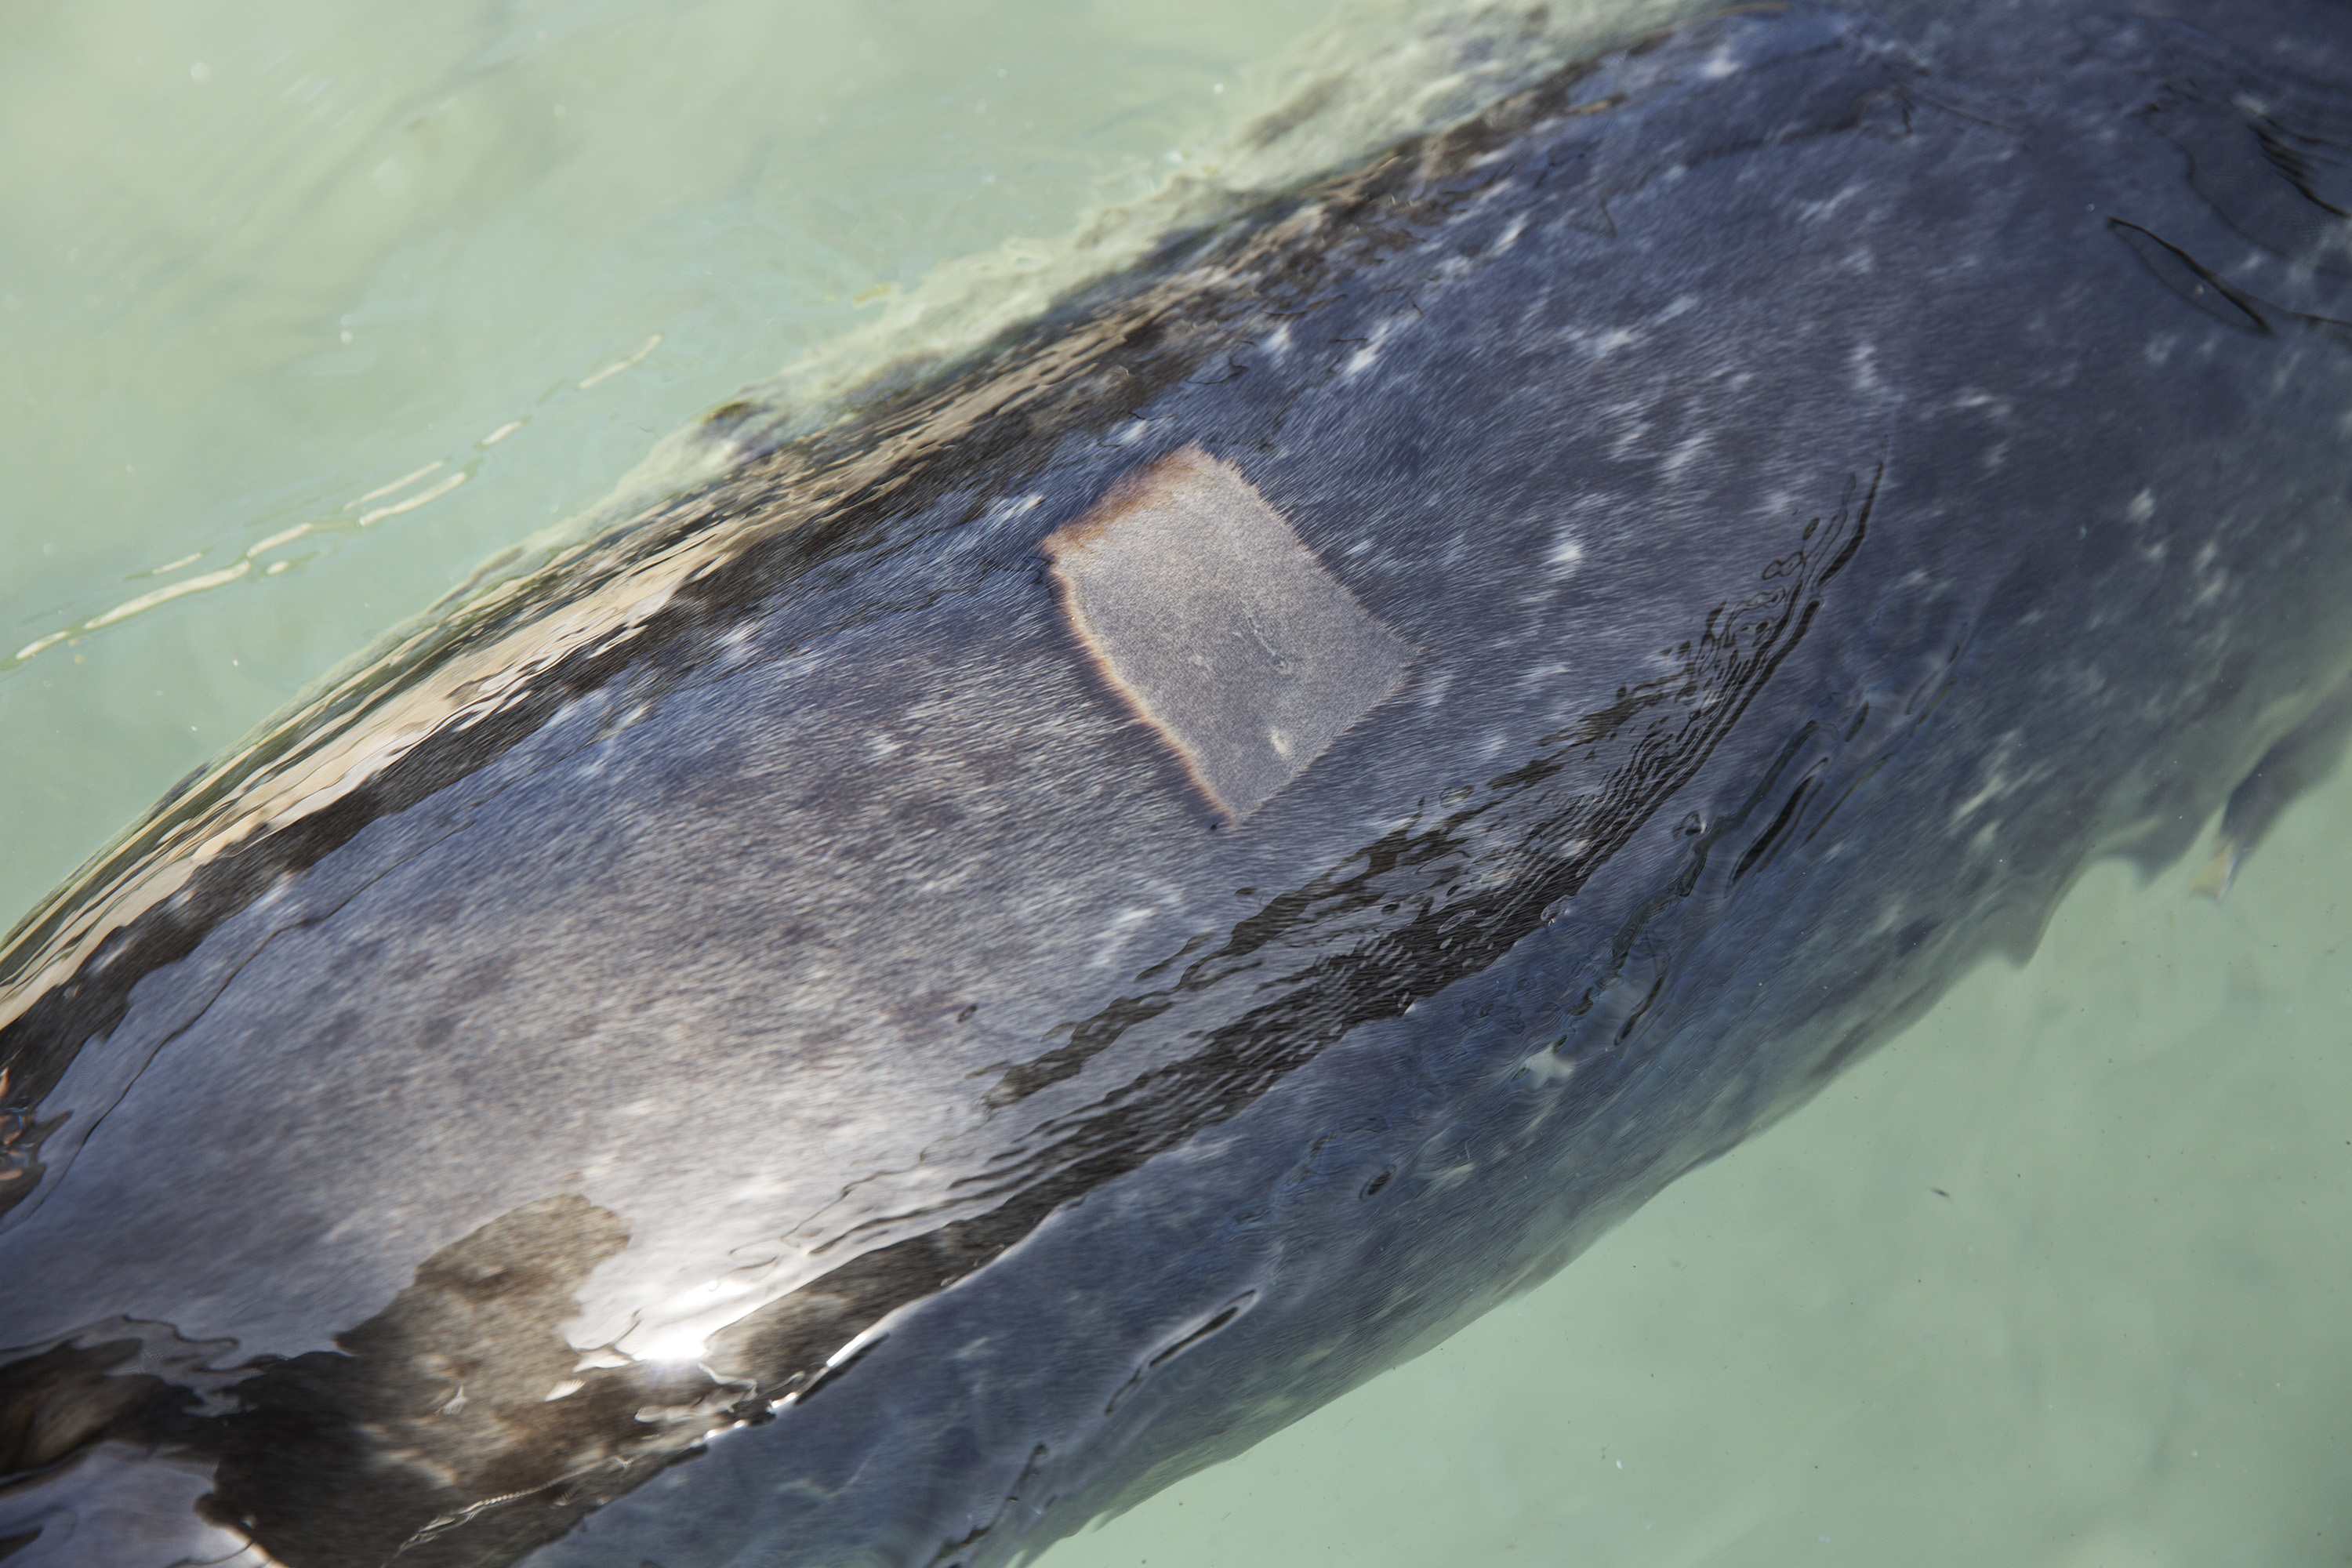 A shaved patch on the back of a harbor seal shows where blood was drawn during an admit exam at the Marine Mammal Center in Marin County, Calif. on May 9, 2014.